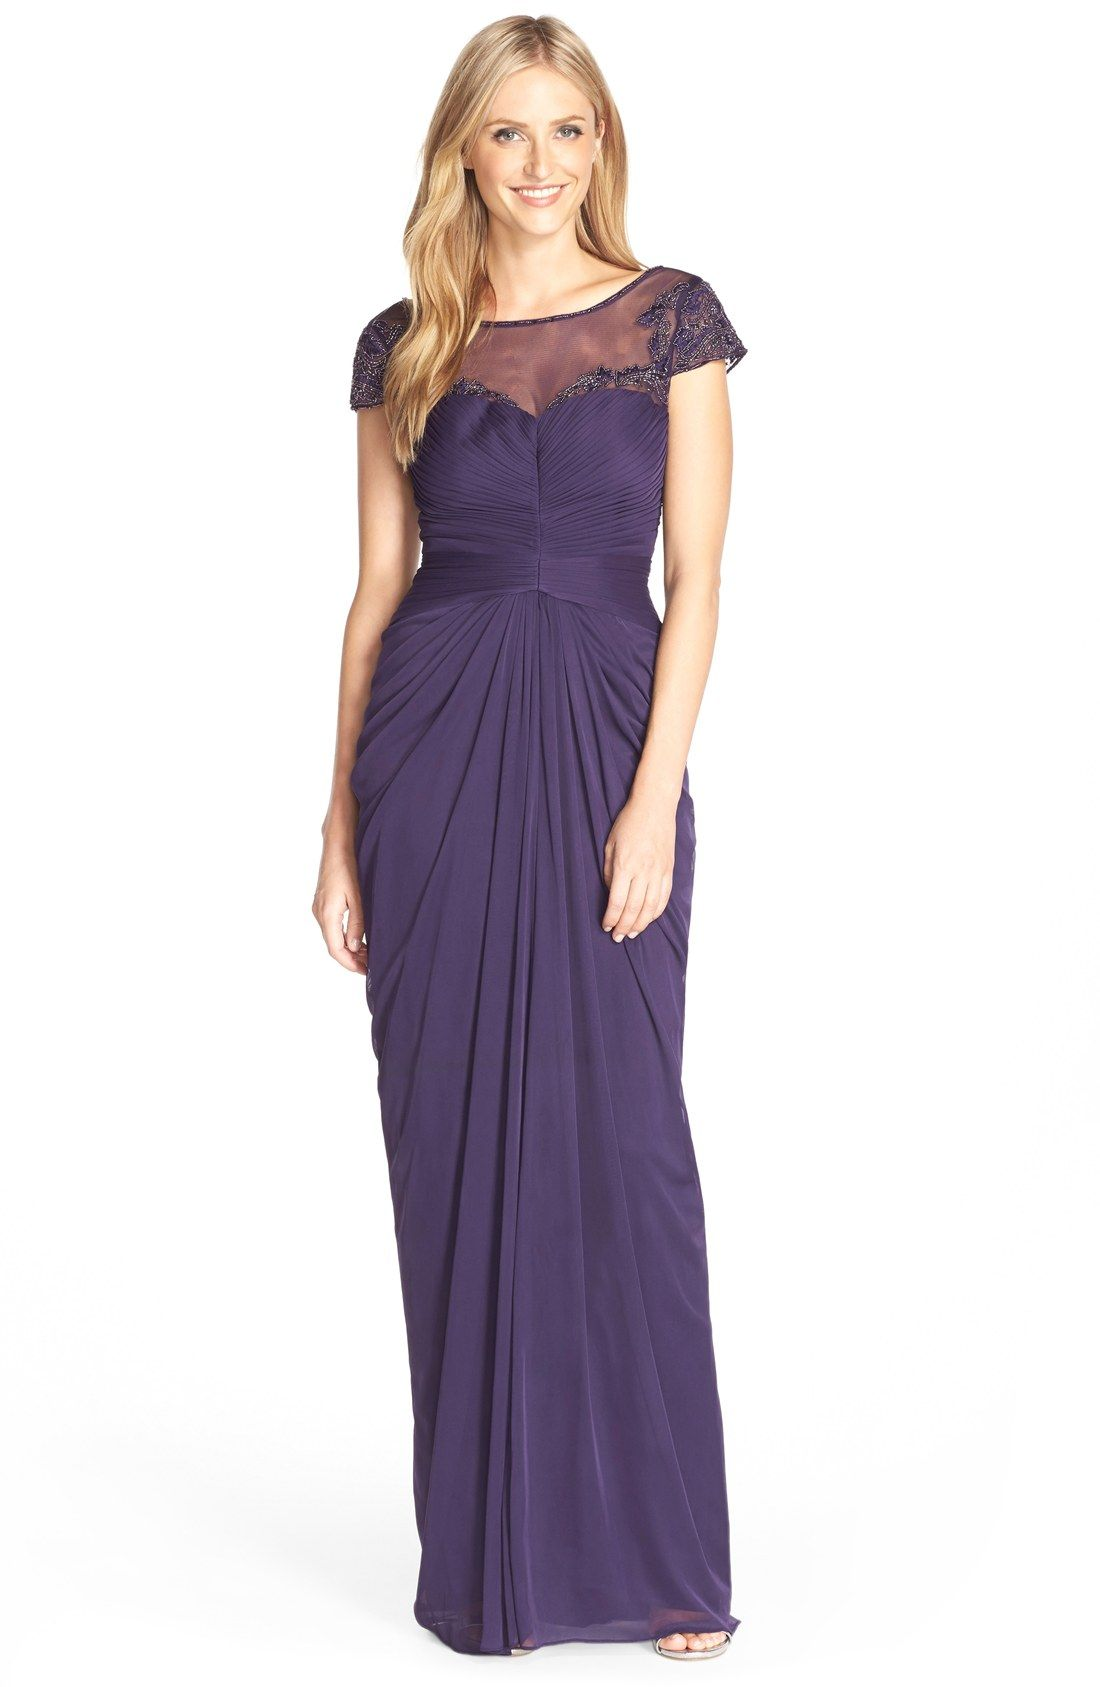 Adrianna Papell Lace Yoke Drape Gown